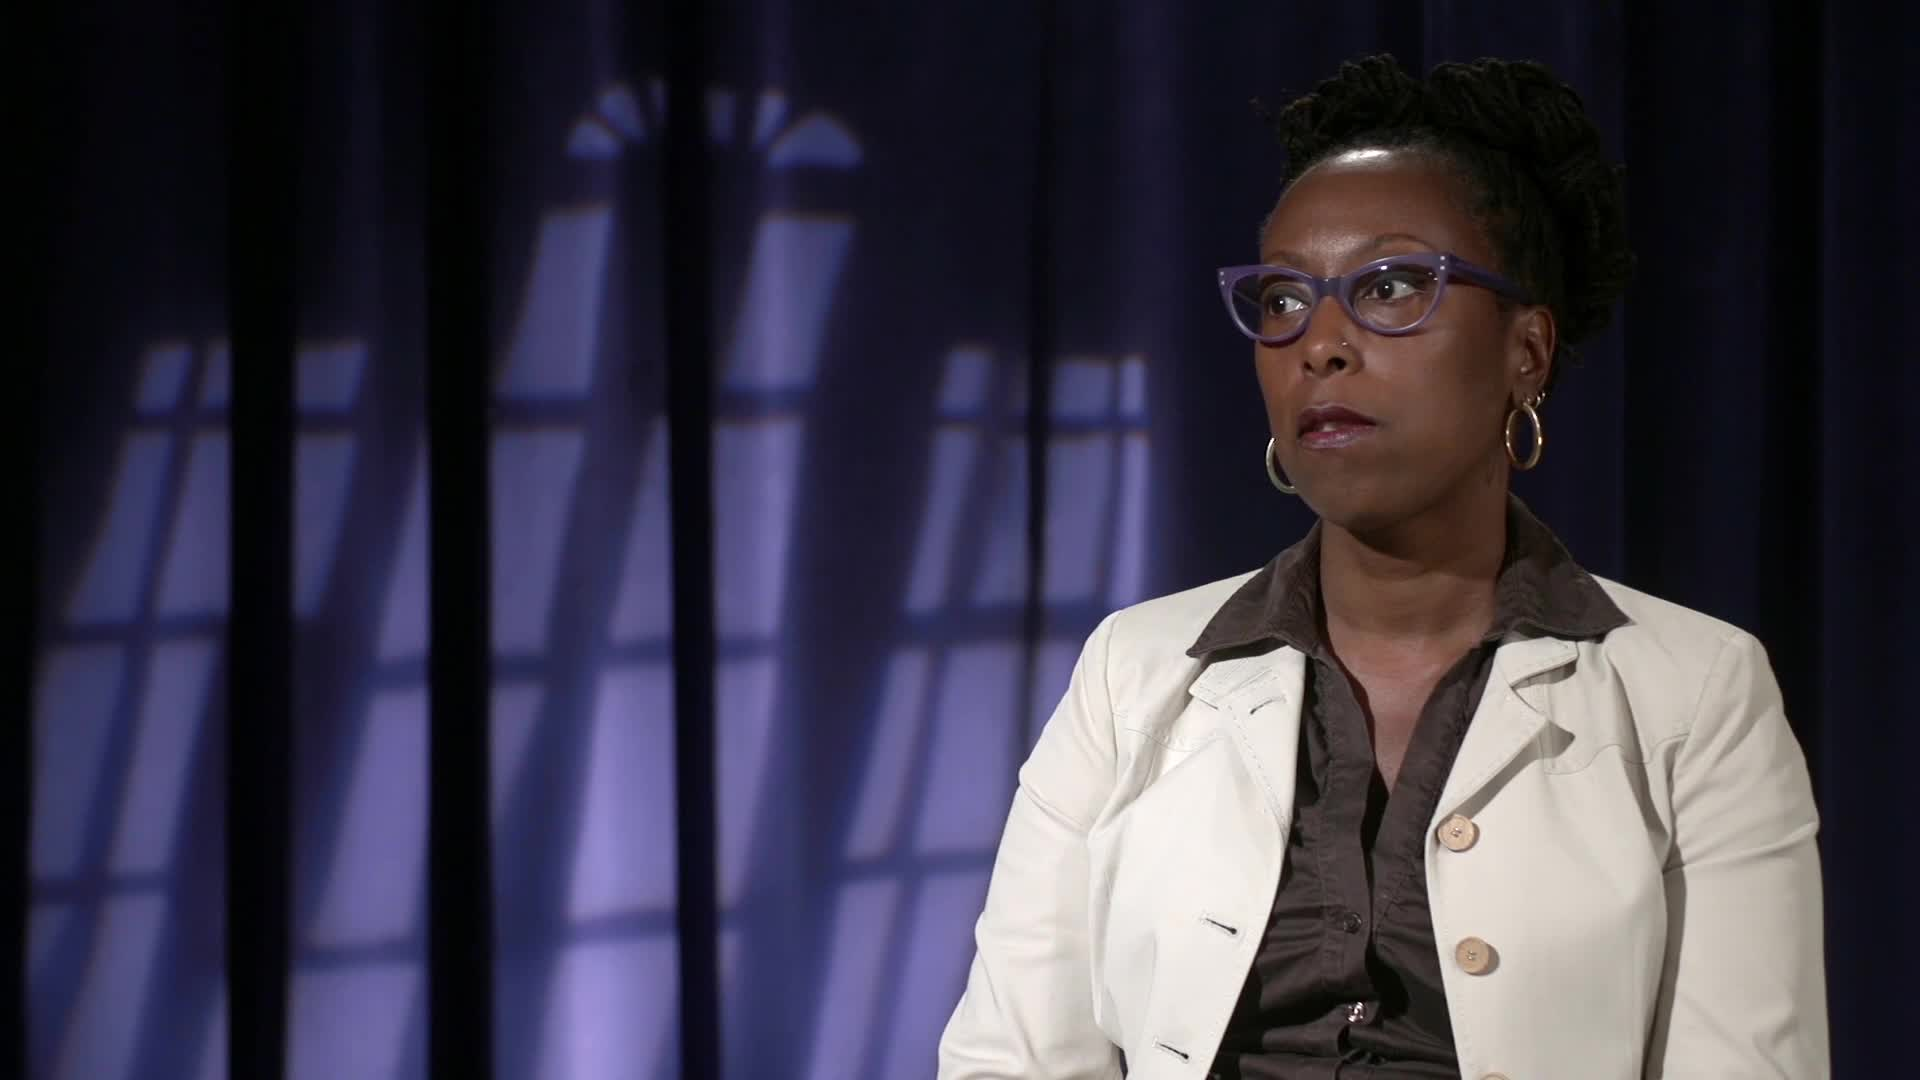 Interview with Rhonda D. Frederick on